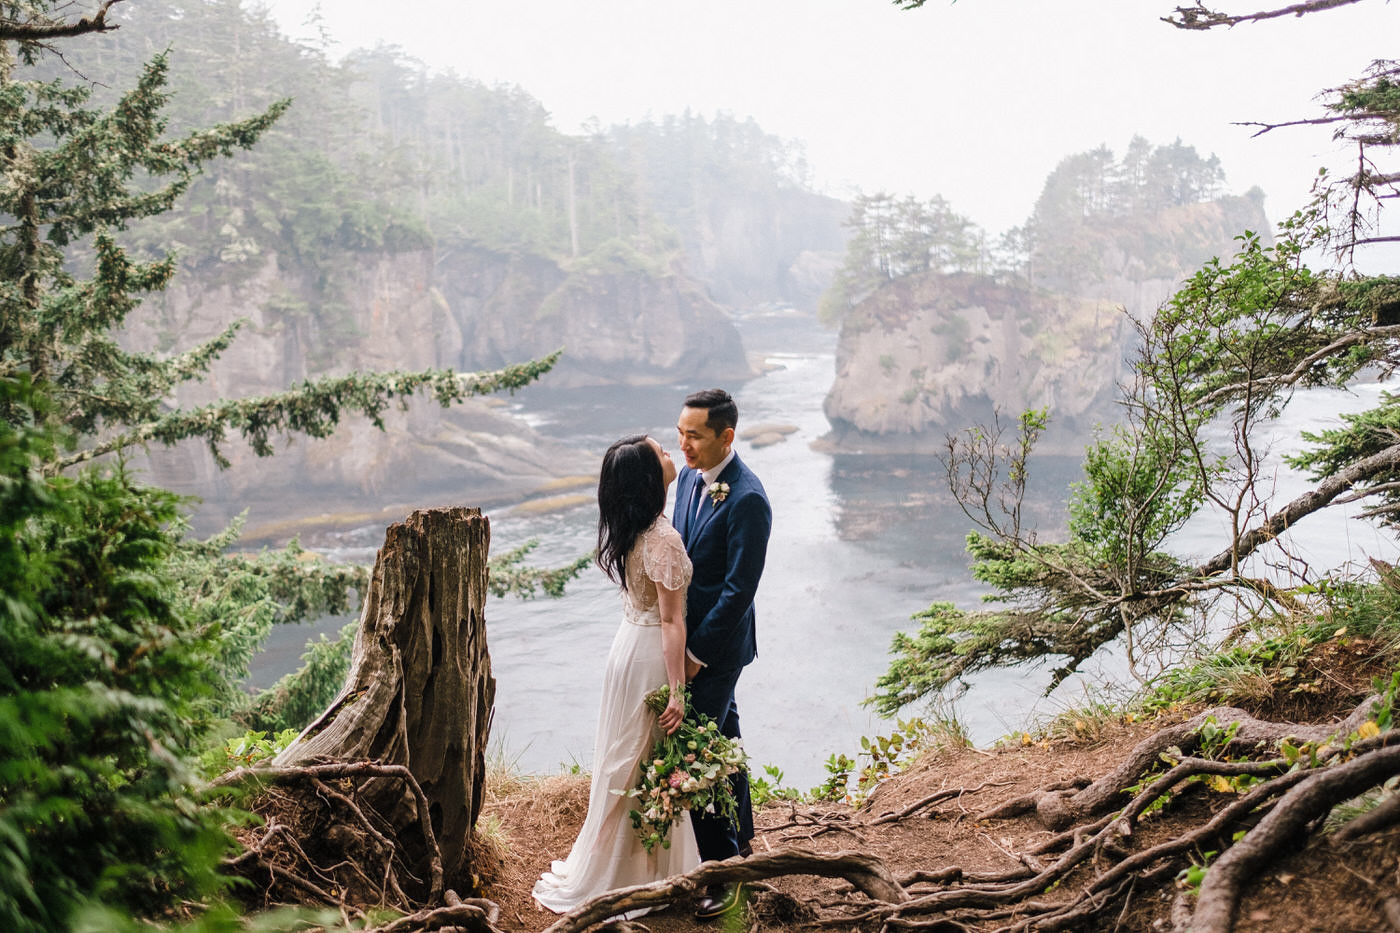 230-pacific-northwest-wedding-photography-by-ryan-flynn.jpg